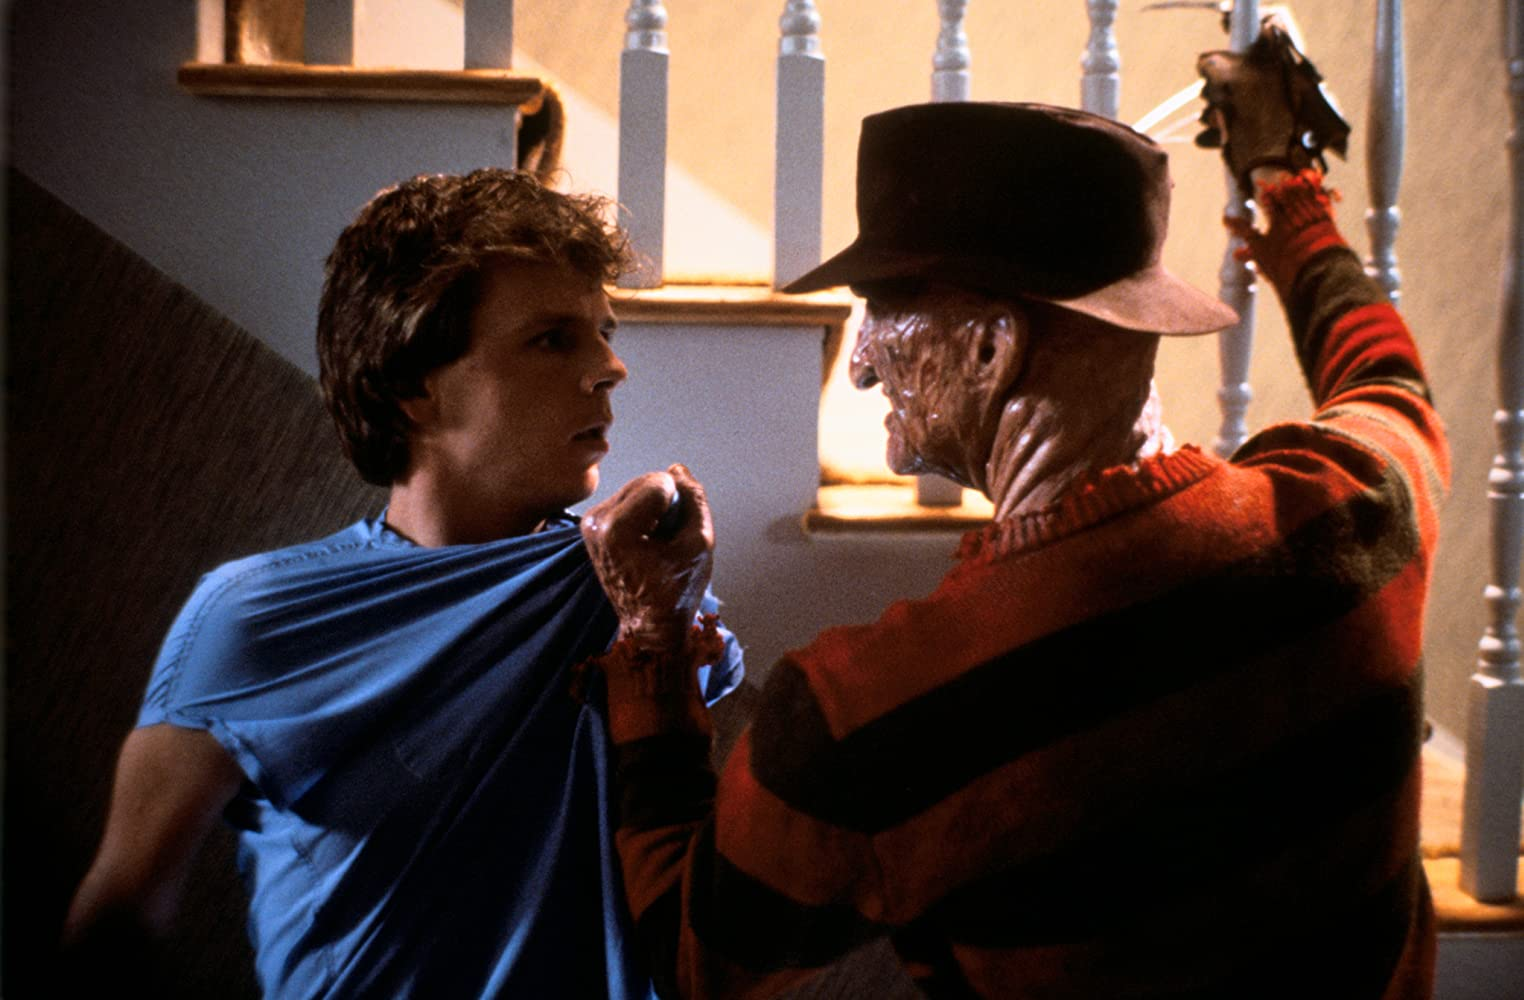 Robert Englund and Mark Patton in A Nightmare on Elm Street Part 2: Freddy's Revenge (1985)